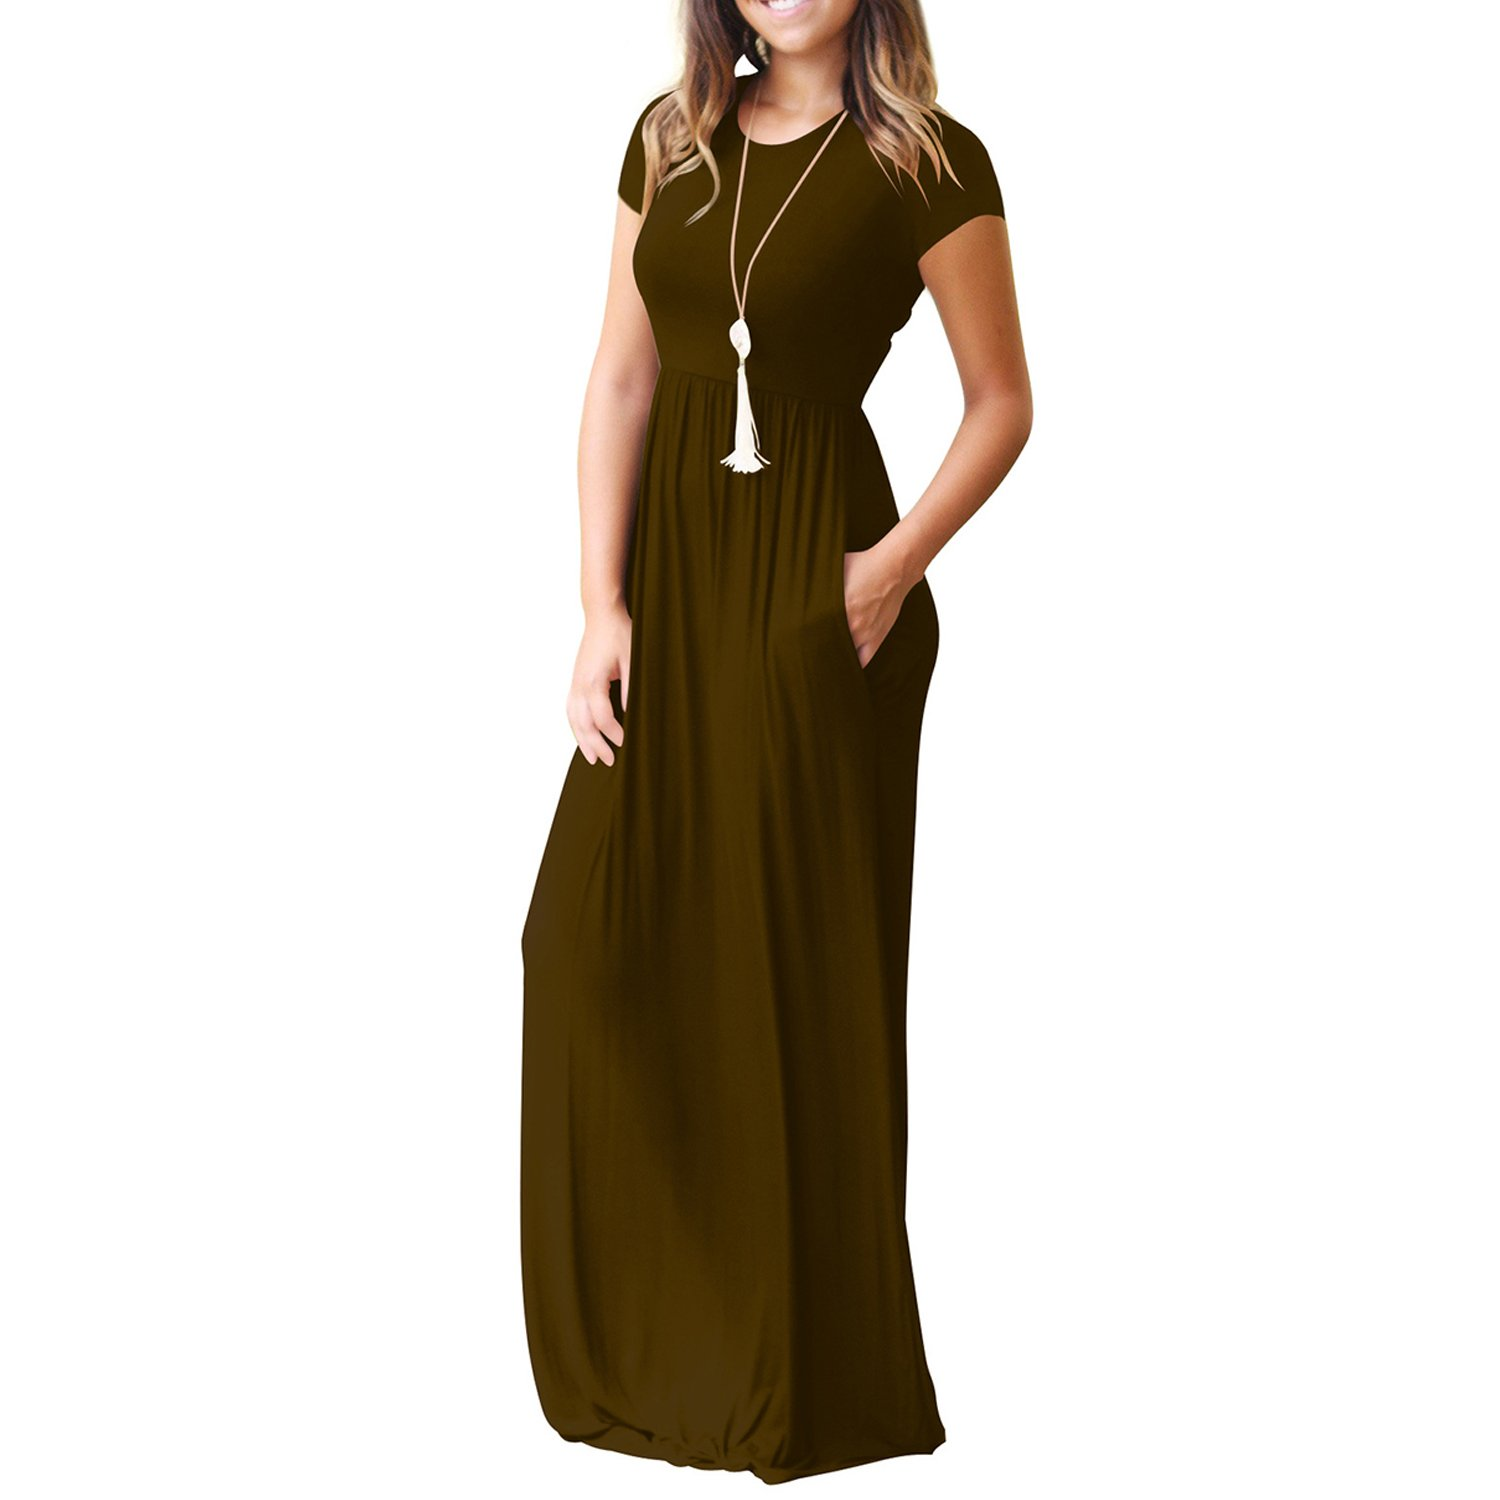 YIJIN Womens O-Neck Short Sleeve Maxi Dresses Casual Loose Long Dresses with Pockets